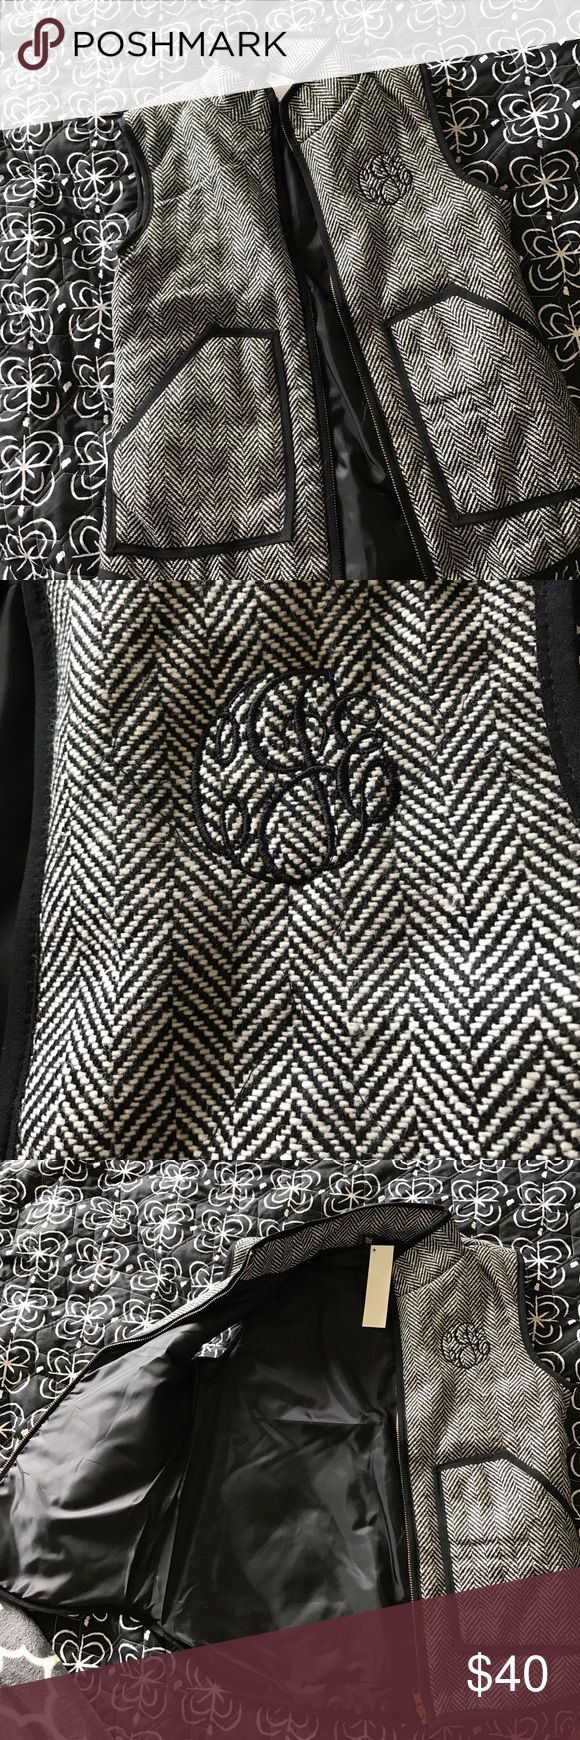 Gorgeous NWT Houndstooth vest NWT Boutique Gorgeous black and white houndstooth vest! I bought this for my aunt and they accidentally shipped two. It does have initials embroidered on it (from left to right initials are CJE) so if those are your initials, or the initials don't bother you then this is perfect! The inside has beautiful good quality lining. Looks amazing with riding boots  Jackets & Coats Vests